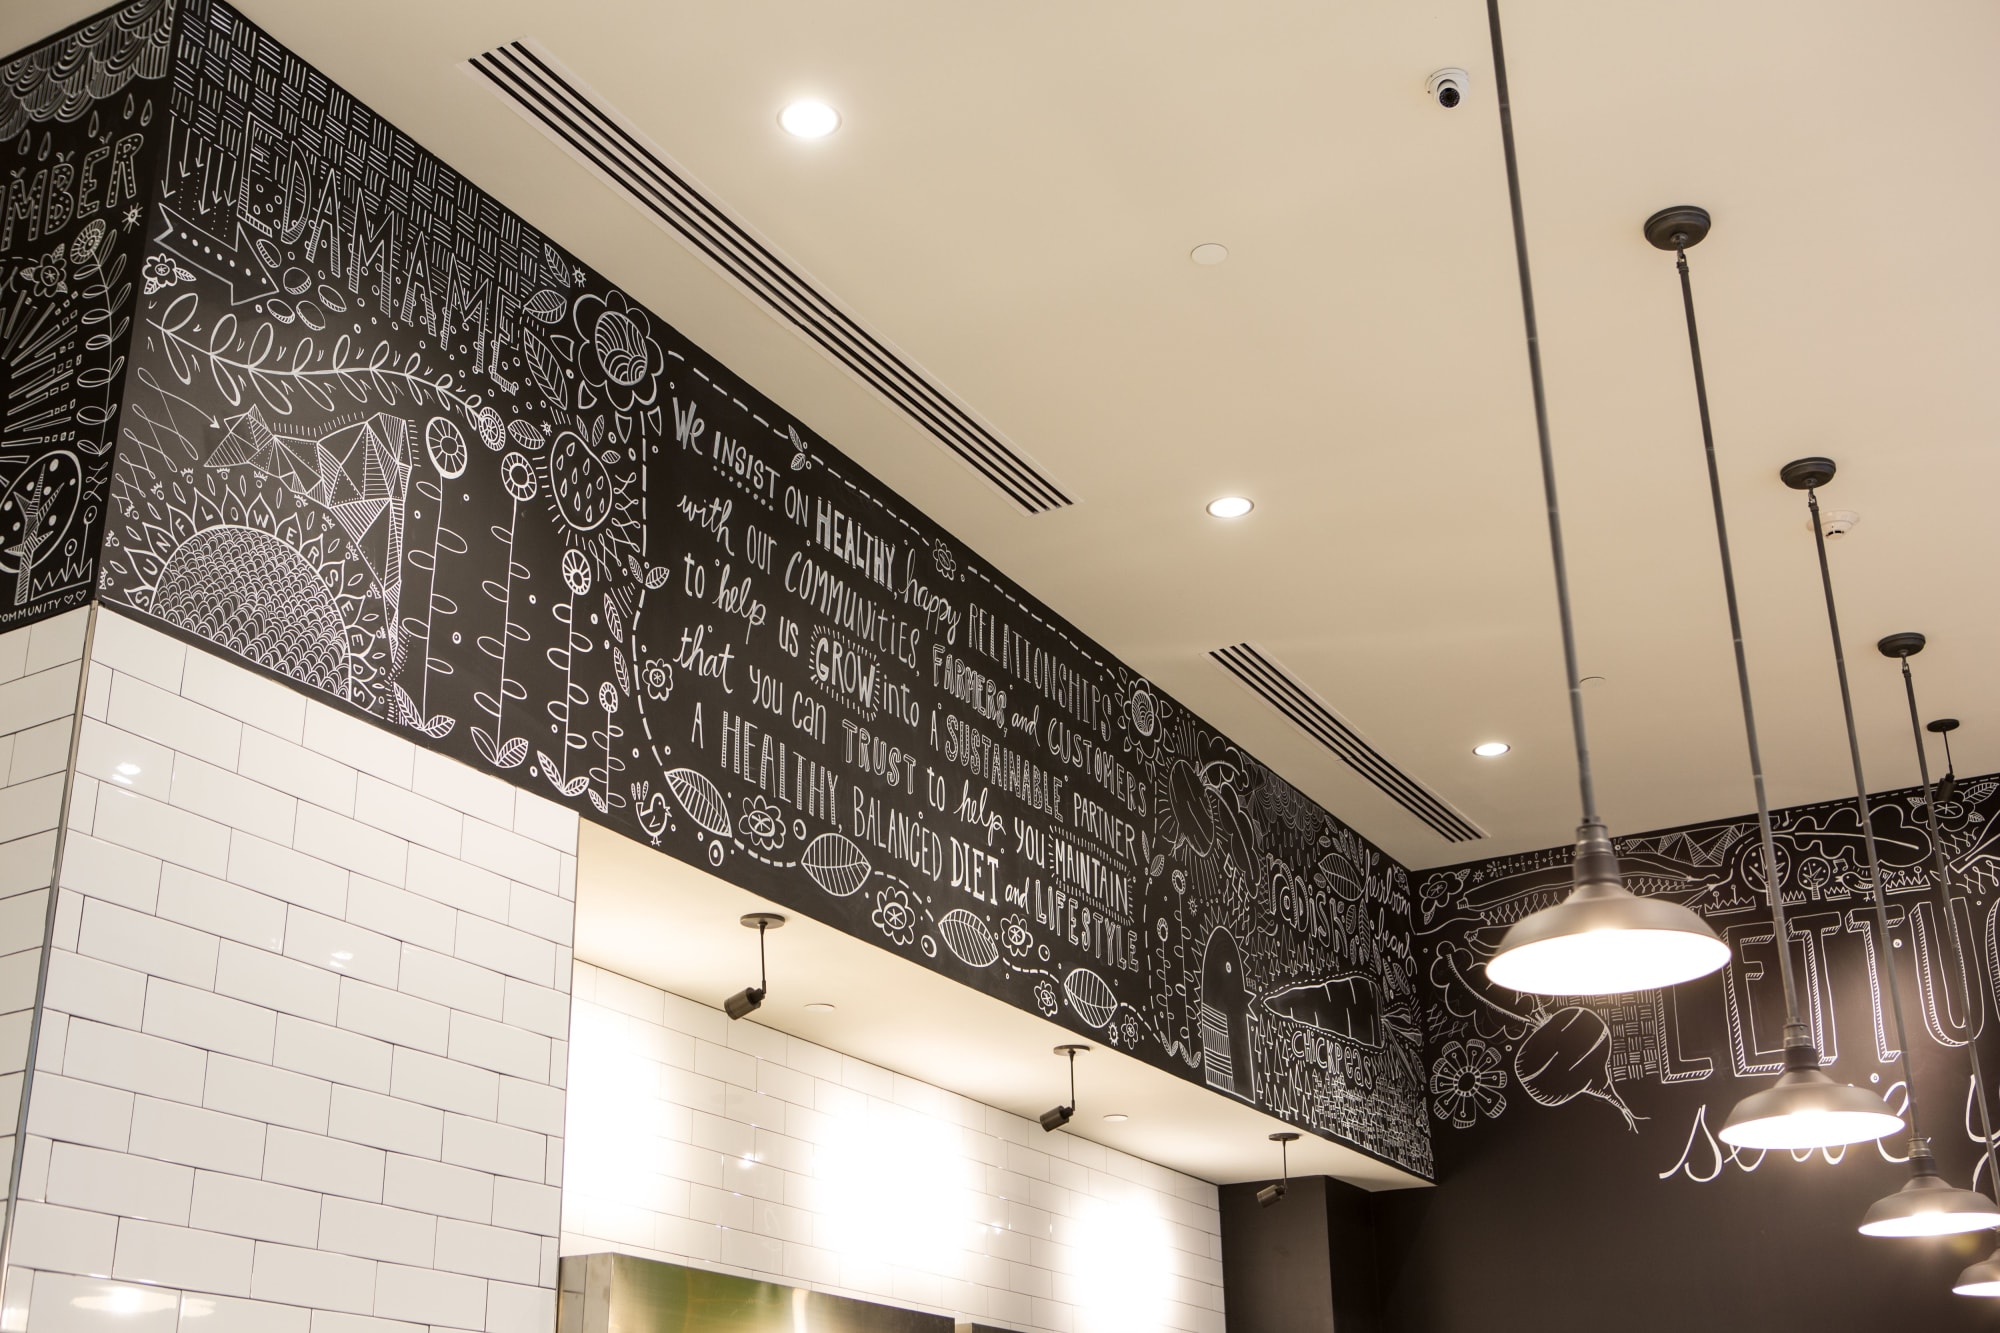 Murals by Kim Fox seen at 611 William Penn Pl, Pittsburgh - Earth Inspired Salads restaurant mural